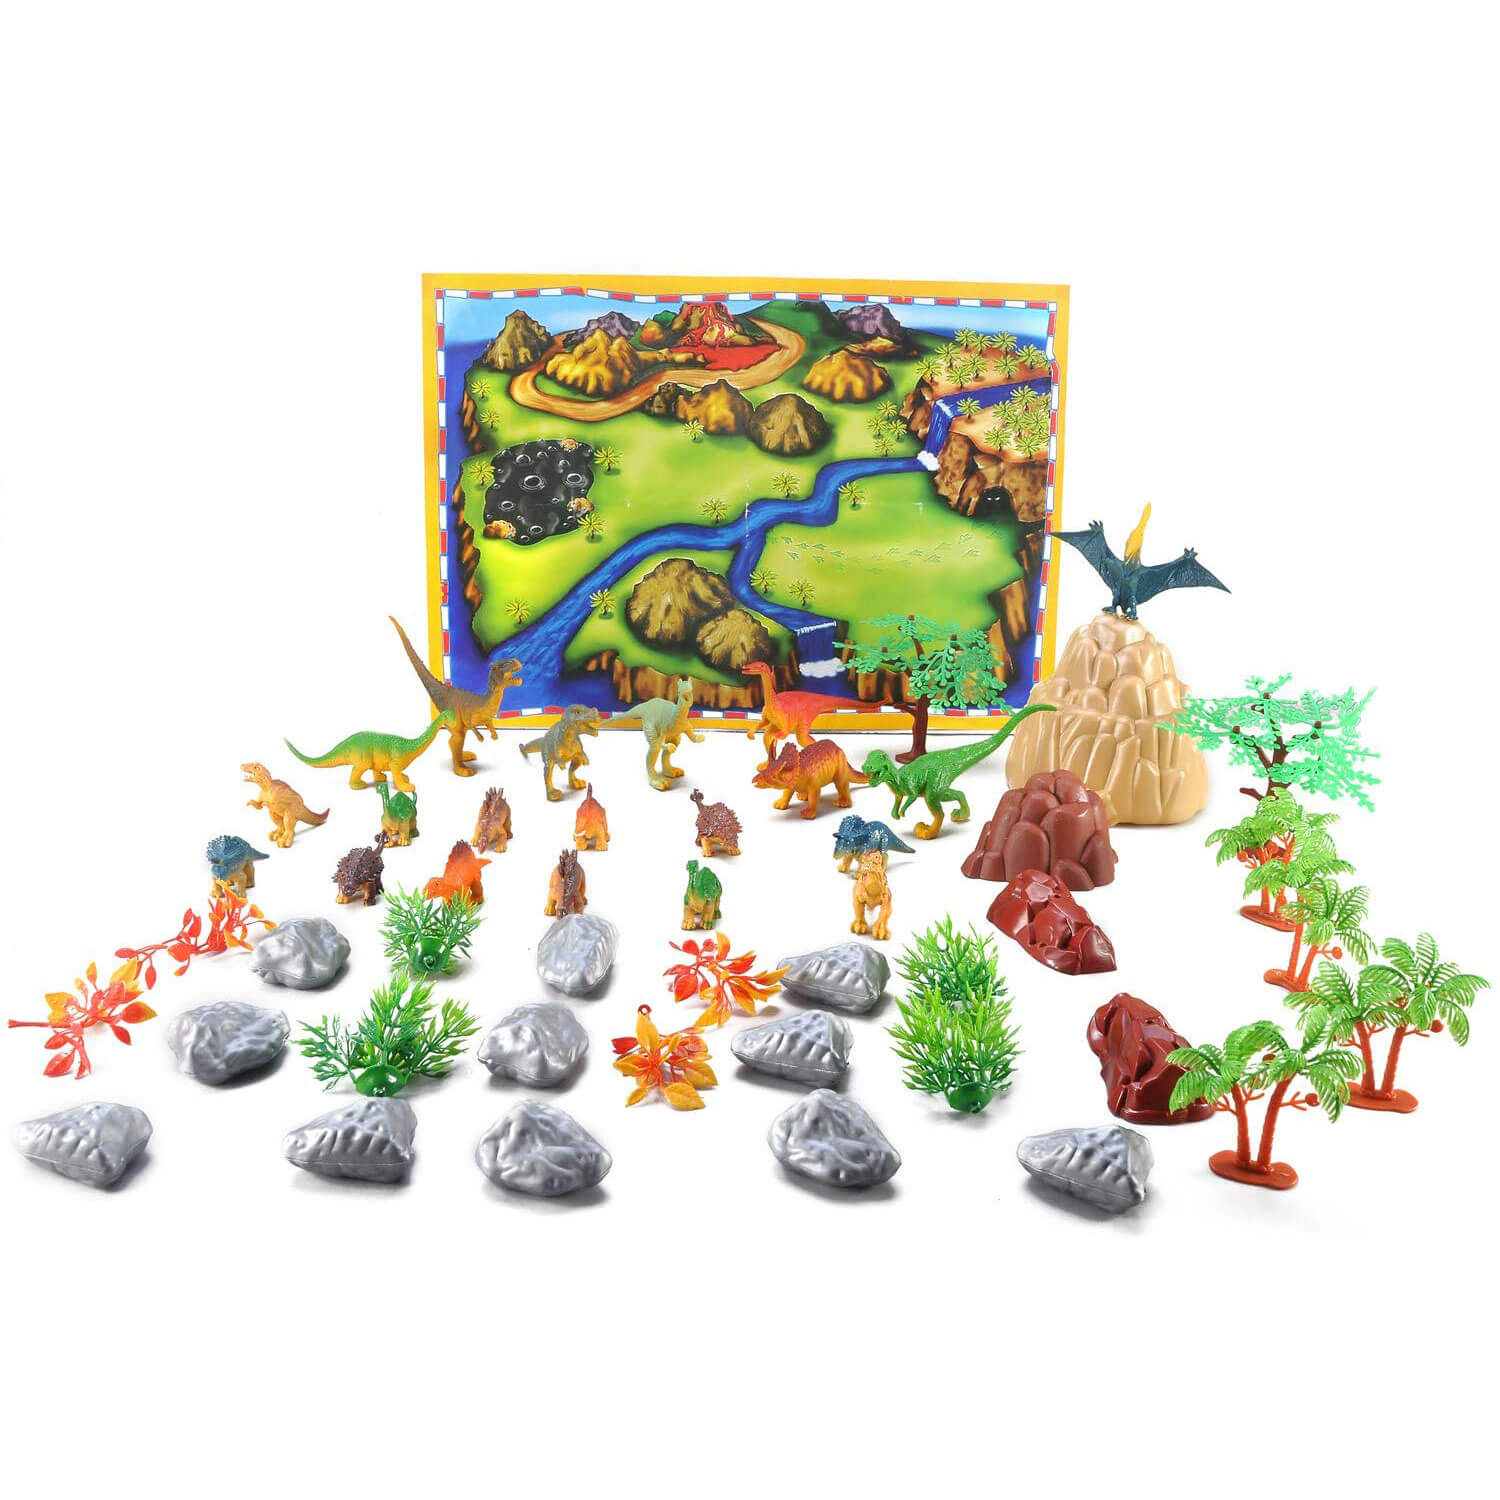 50 Pieces Dinosaur Play Set - Walking Dinosaur with Moving Jaws Coming Out From Jurassic World, Develop Kids Imagination